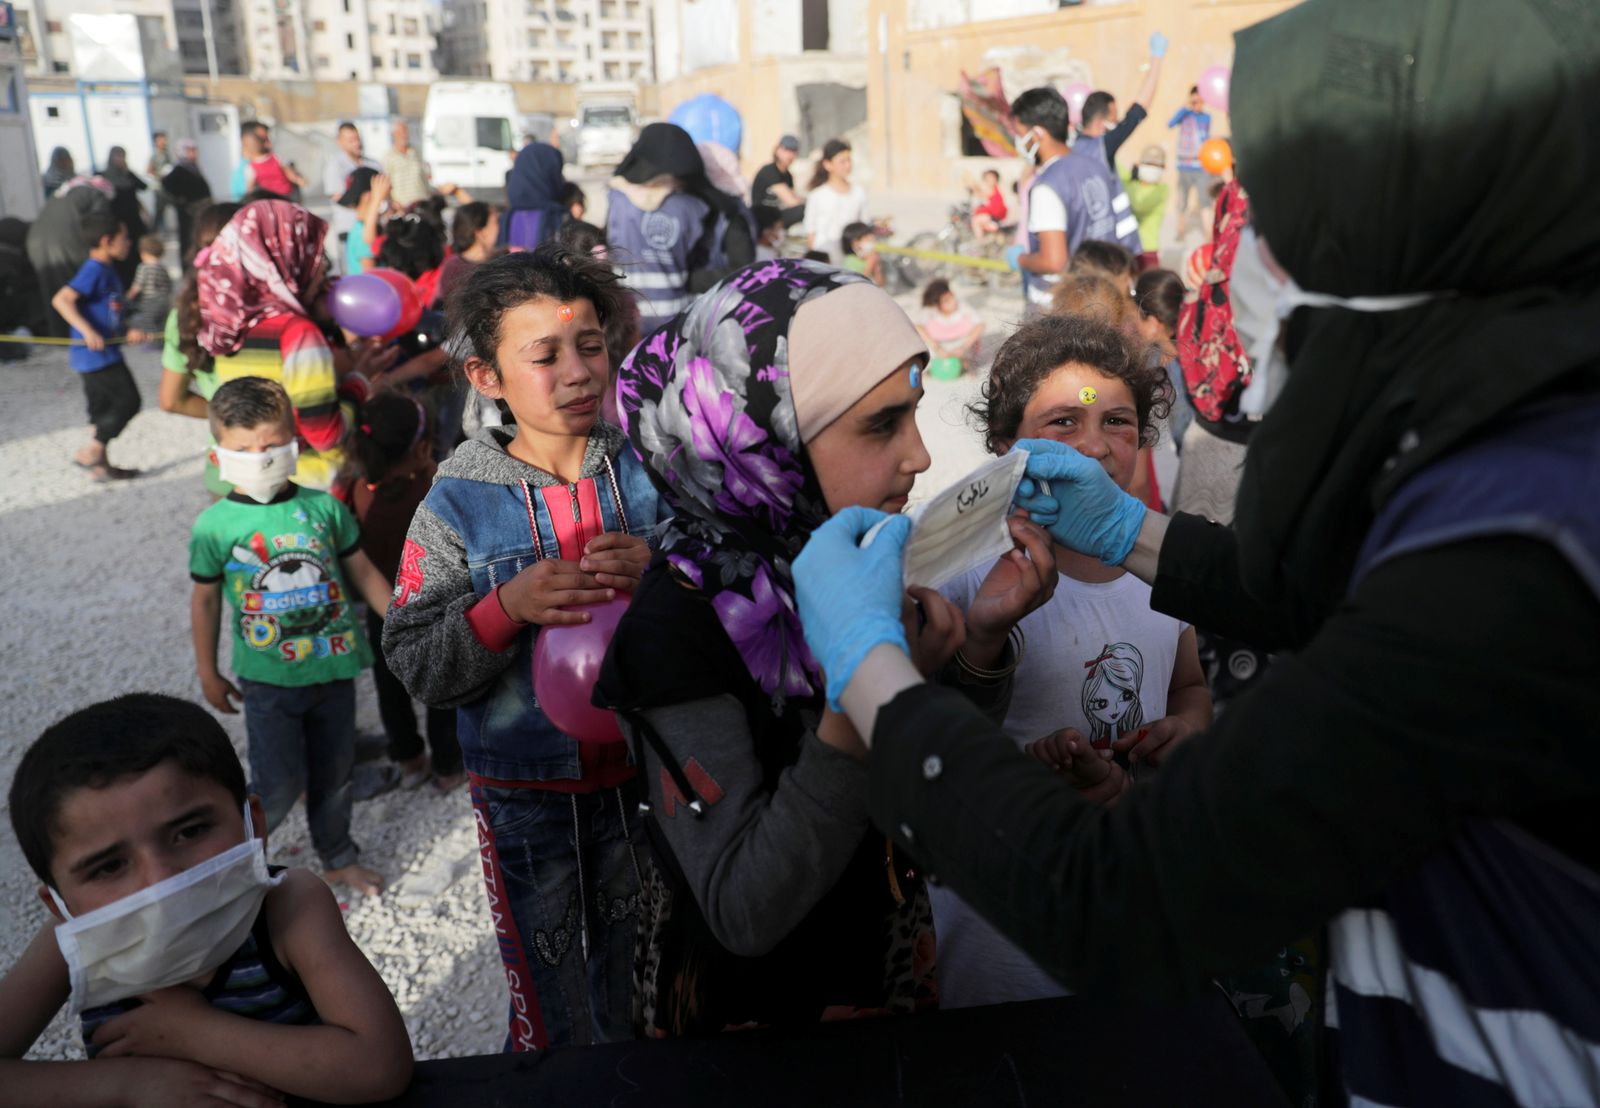 A volunteer distributes face masks to internally displaced children, amid concerns over the spread of the coronavirus disease (COVID-19), at an IDP camp in Idlib